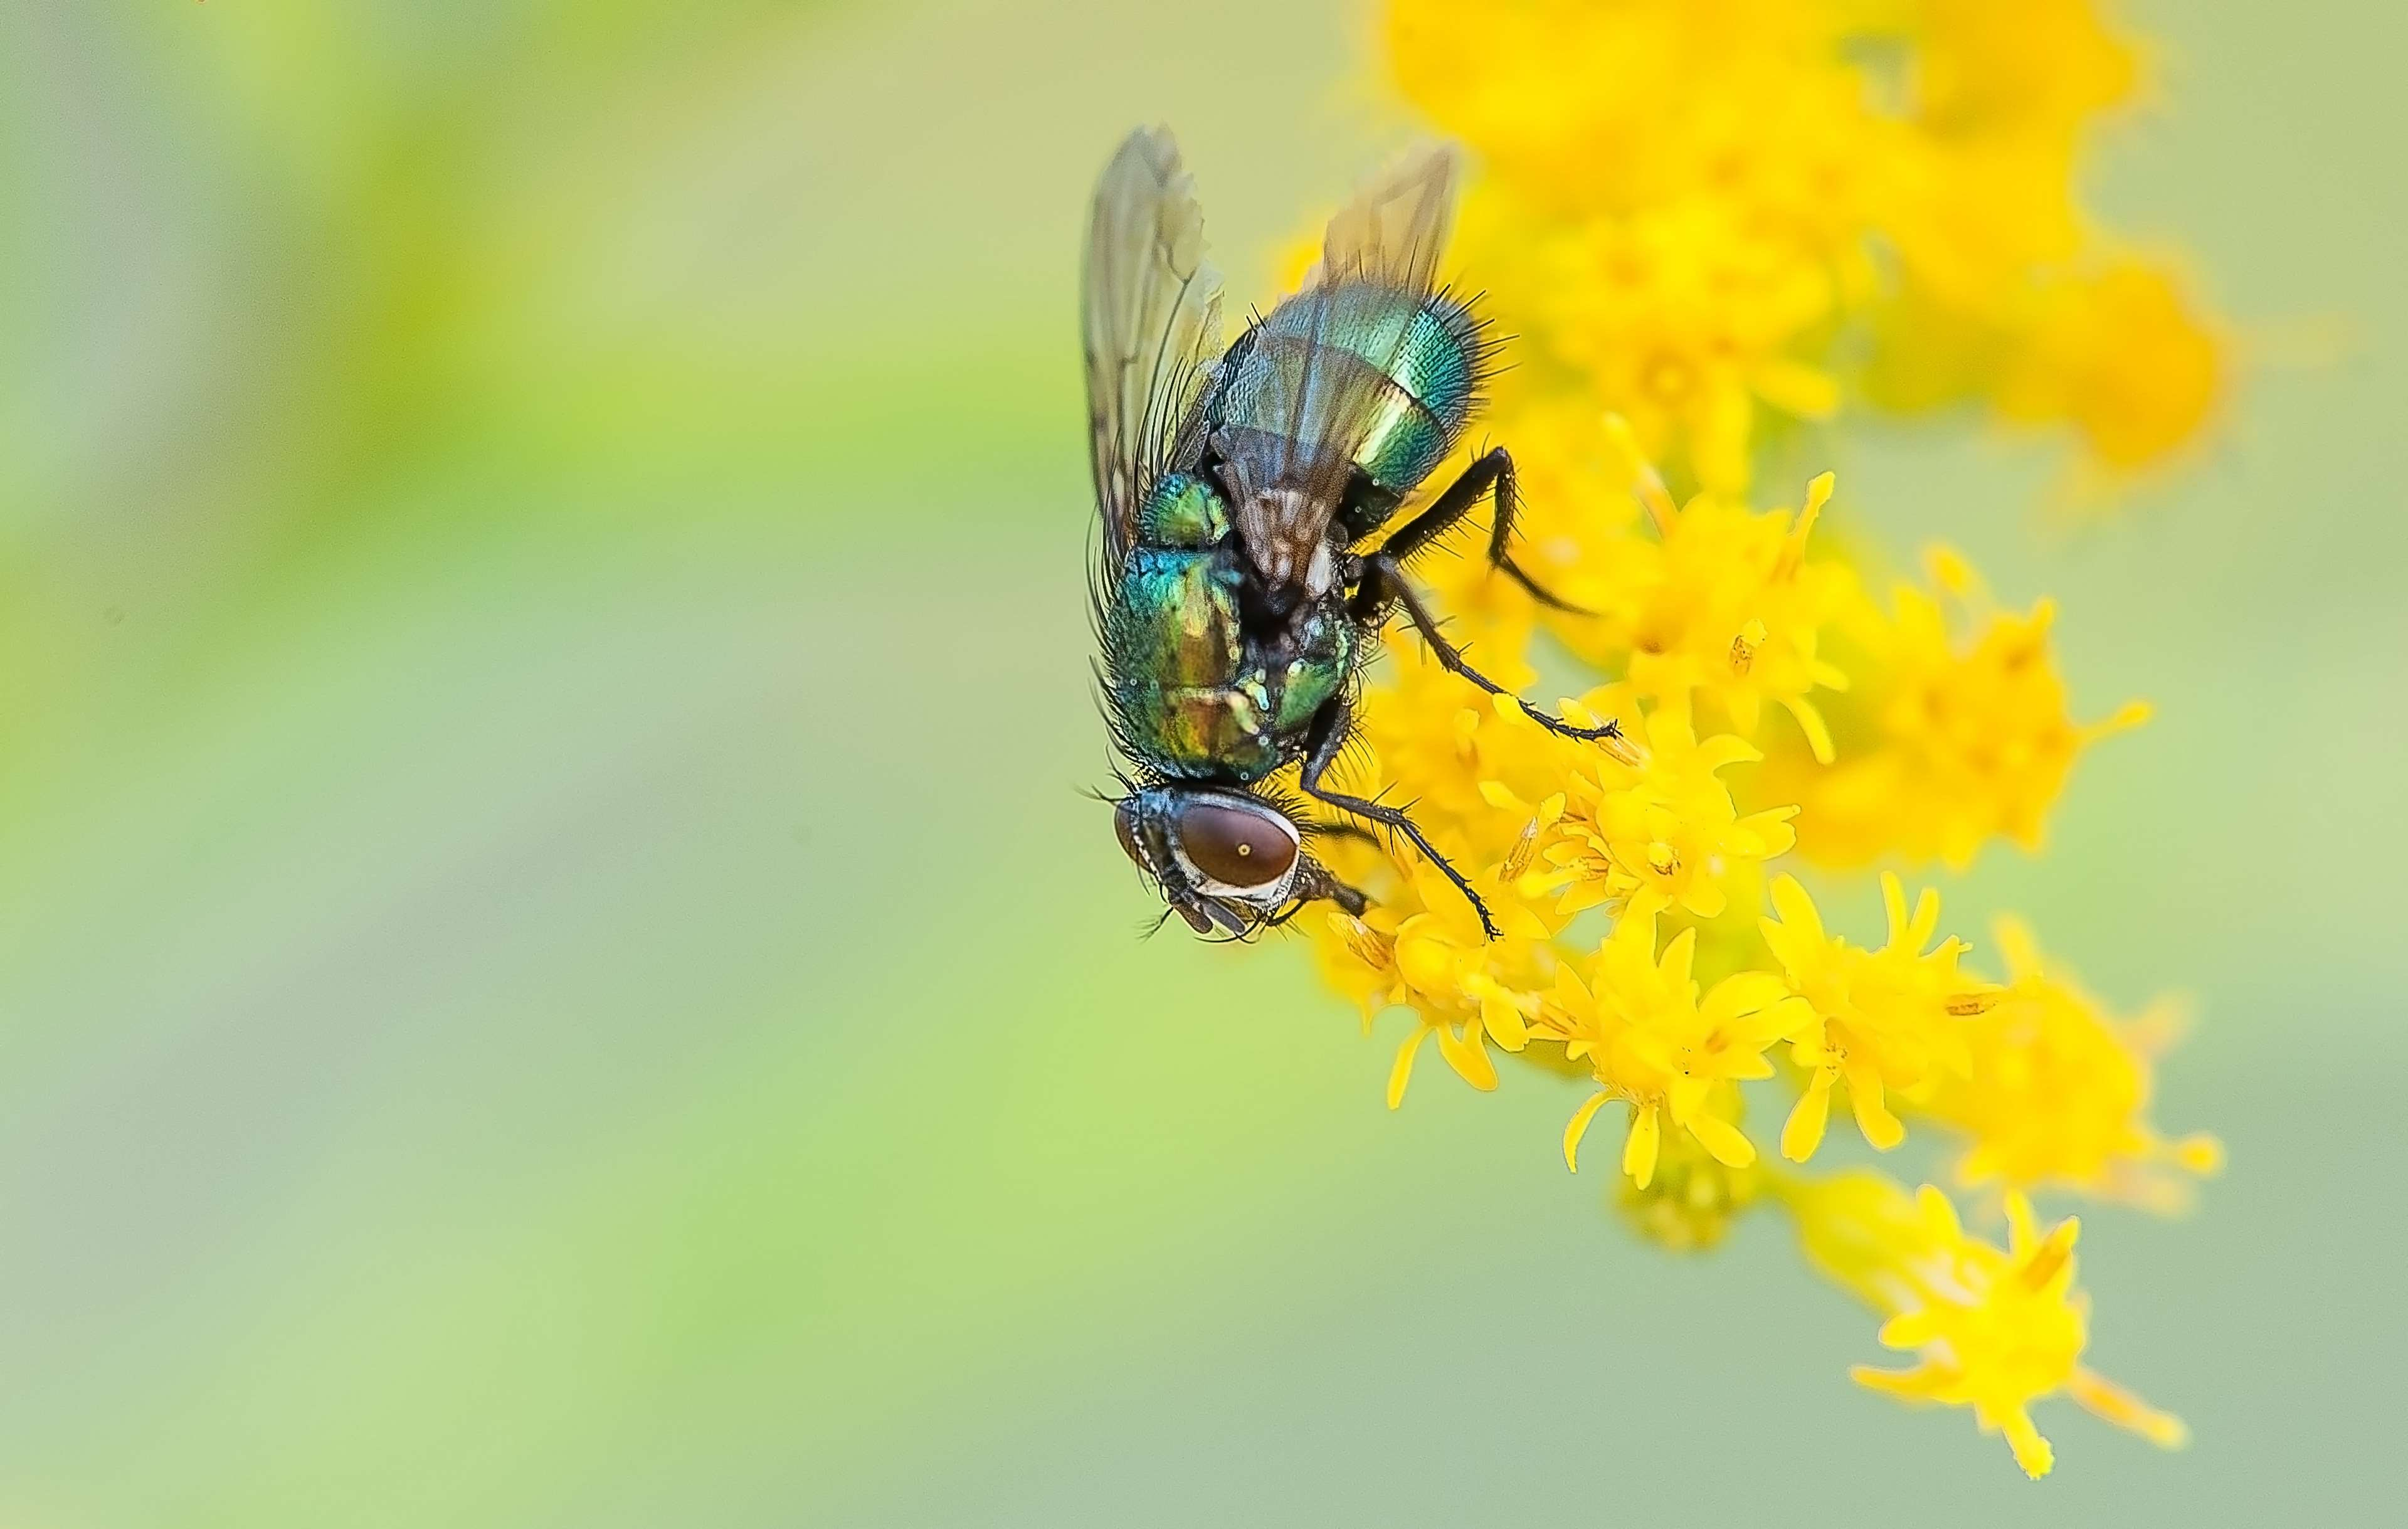 bug, fly, insect, nature, summer 4k wallpapers and backgrounds